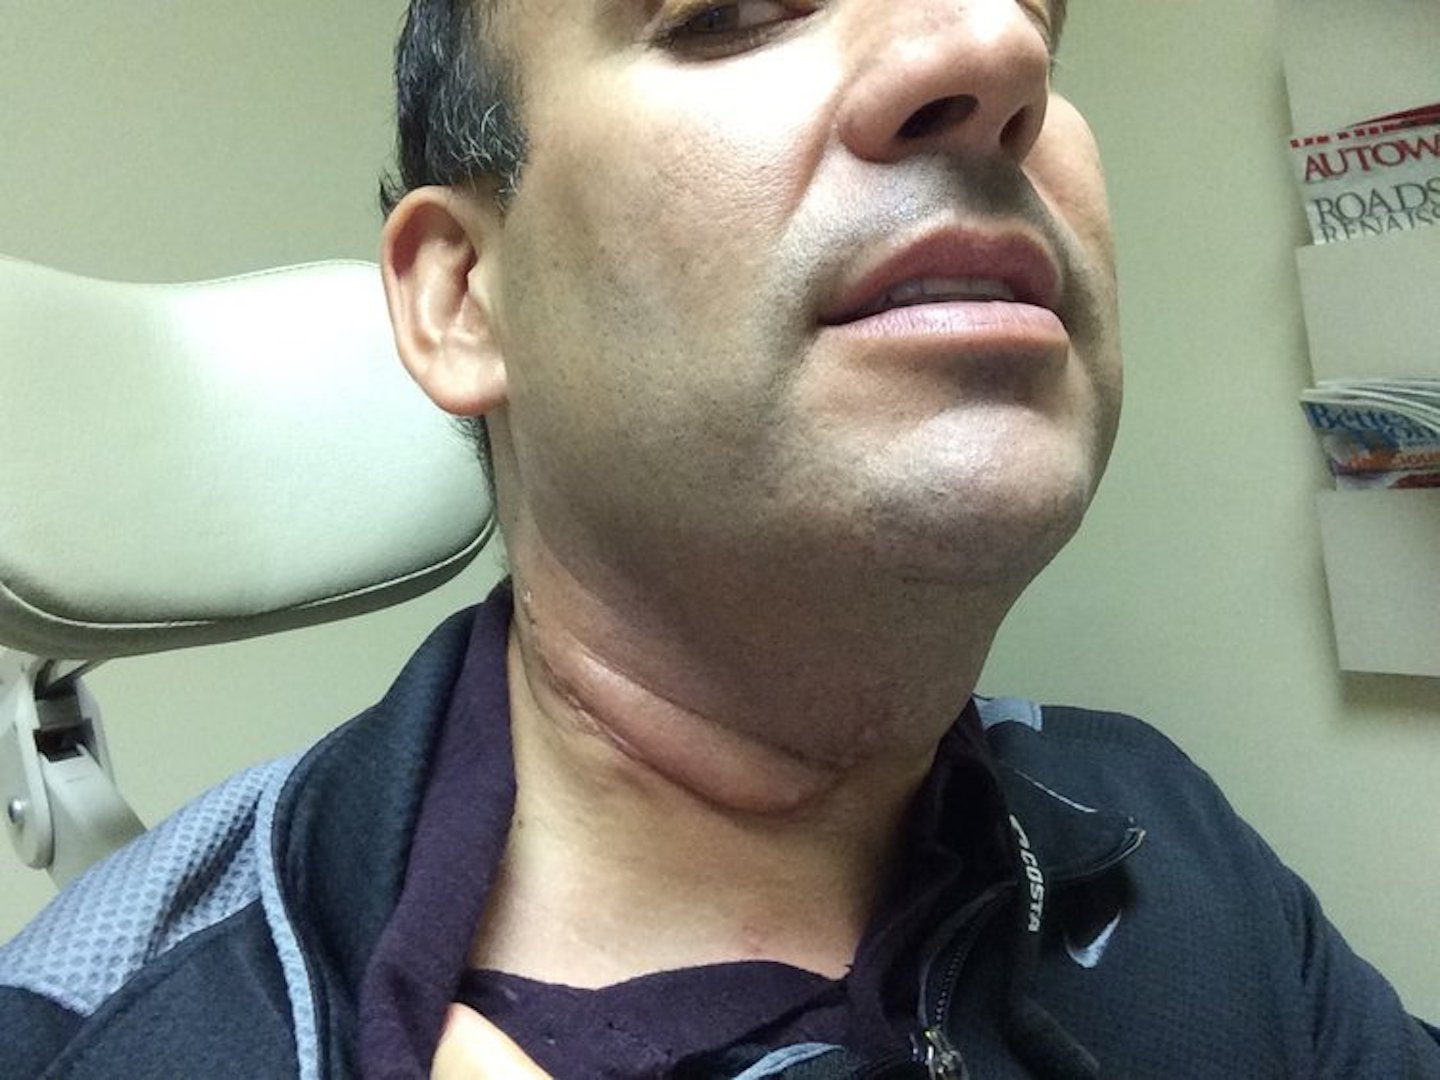 hpv positive throat cancer treatment